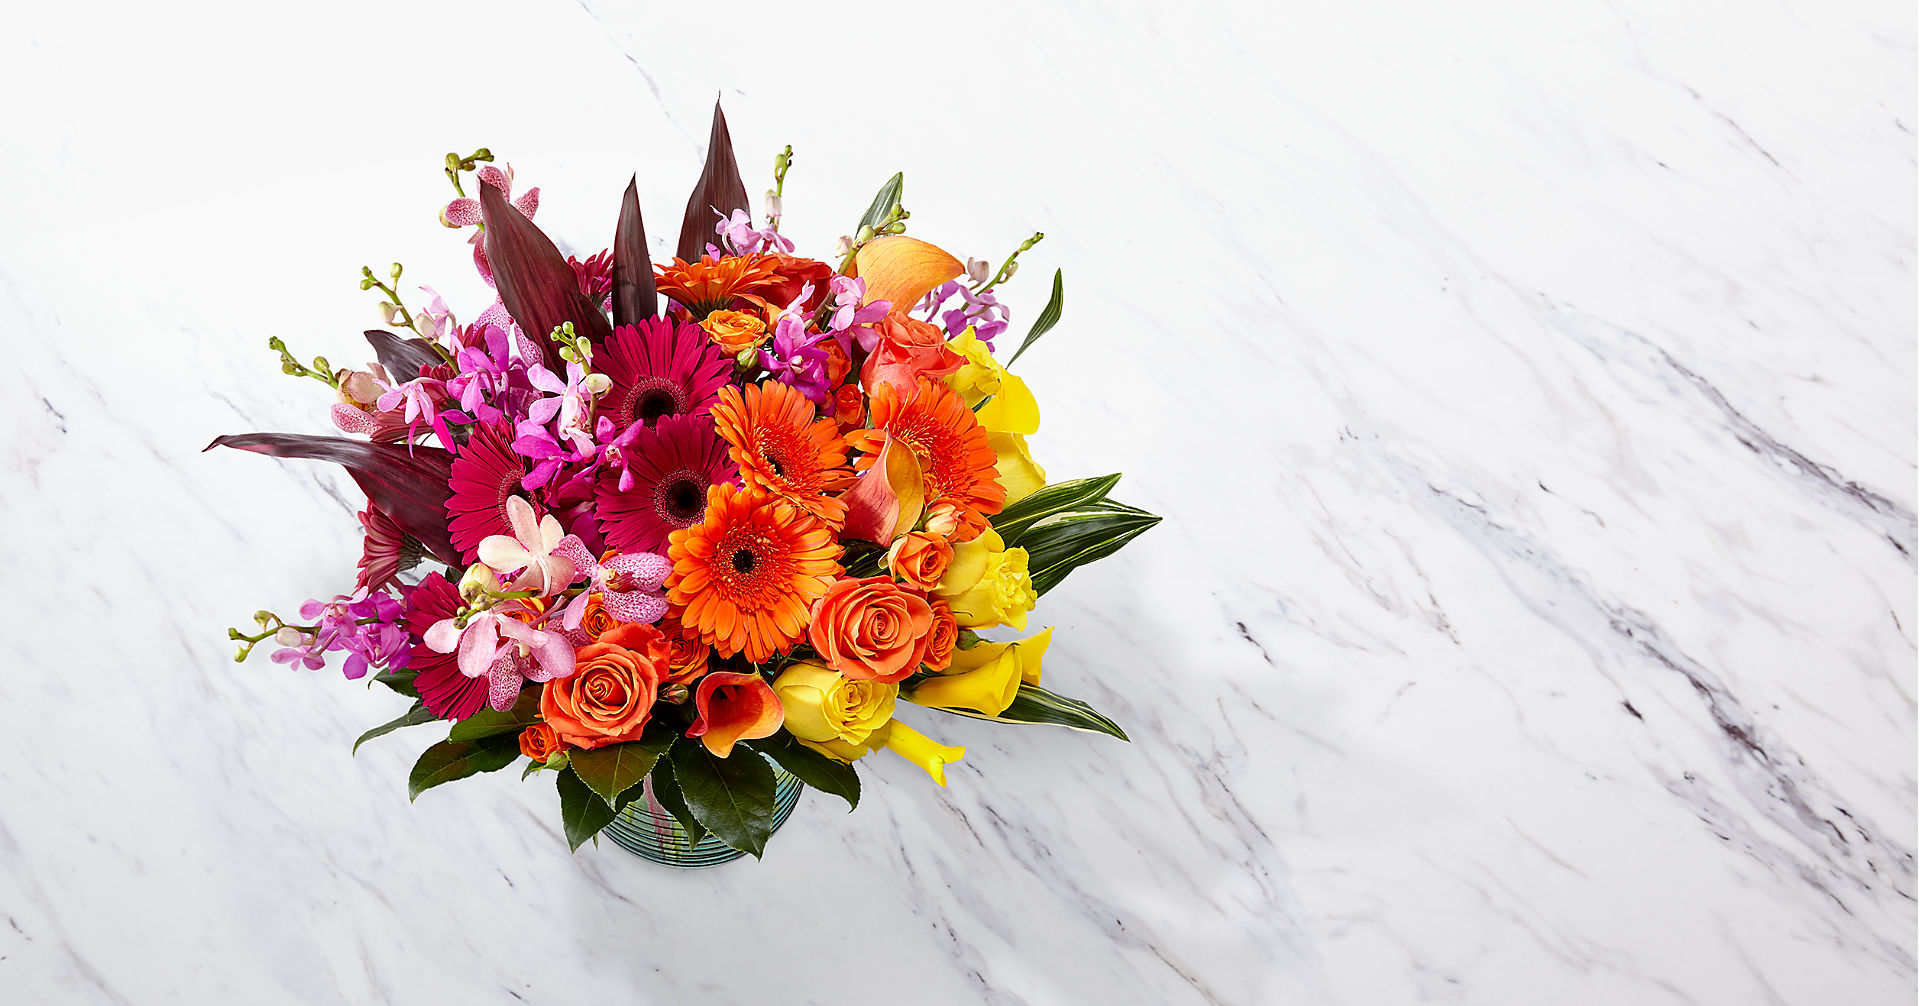 Beyond Brilliant™ Luxury Bouquet - Image 2 Of 3